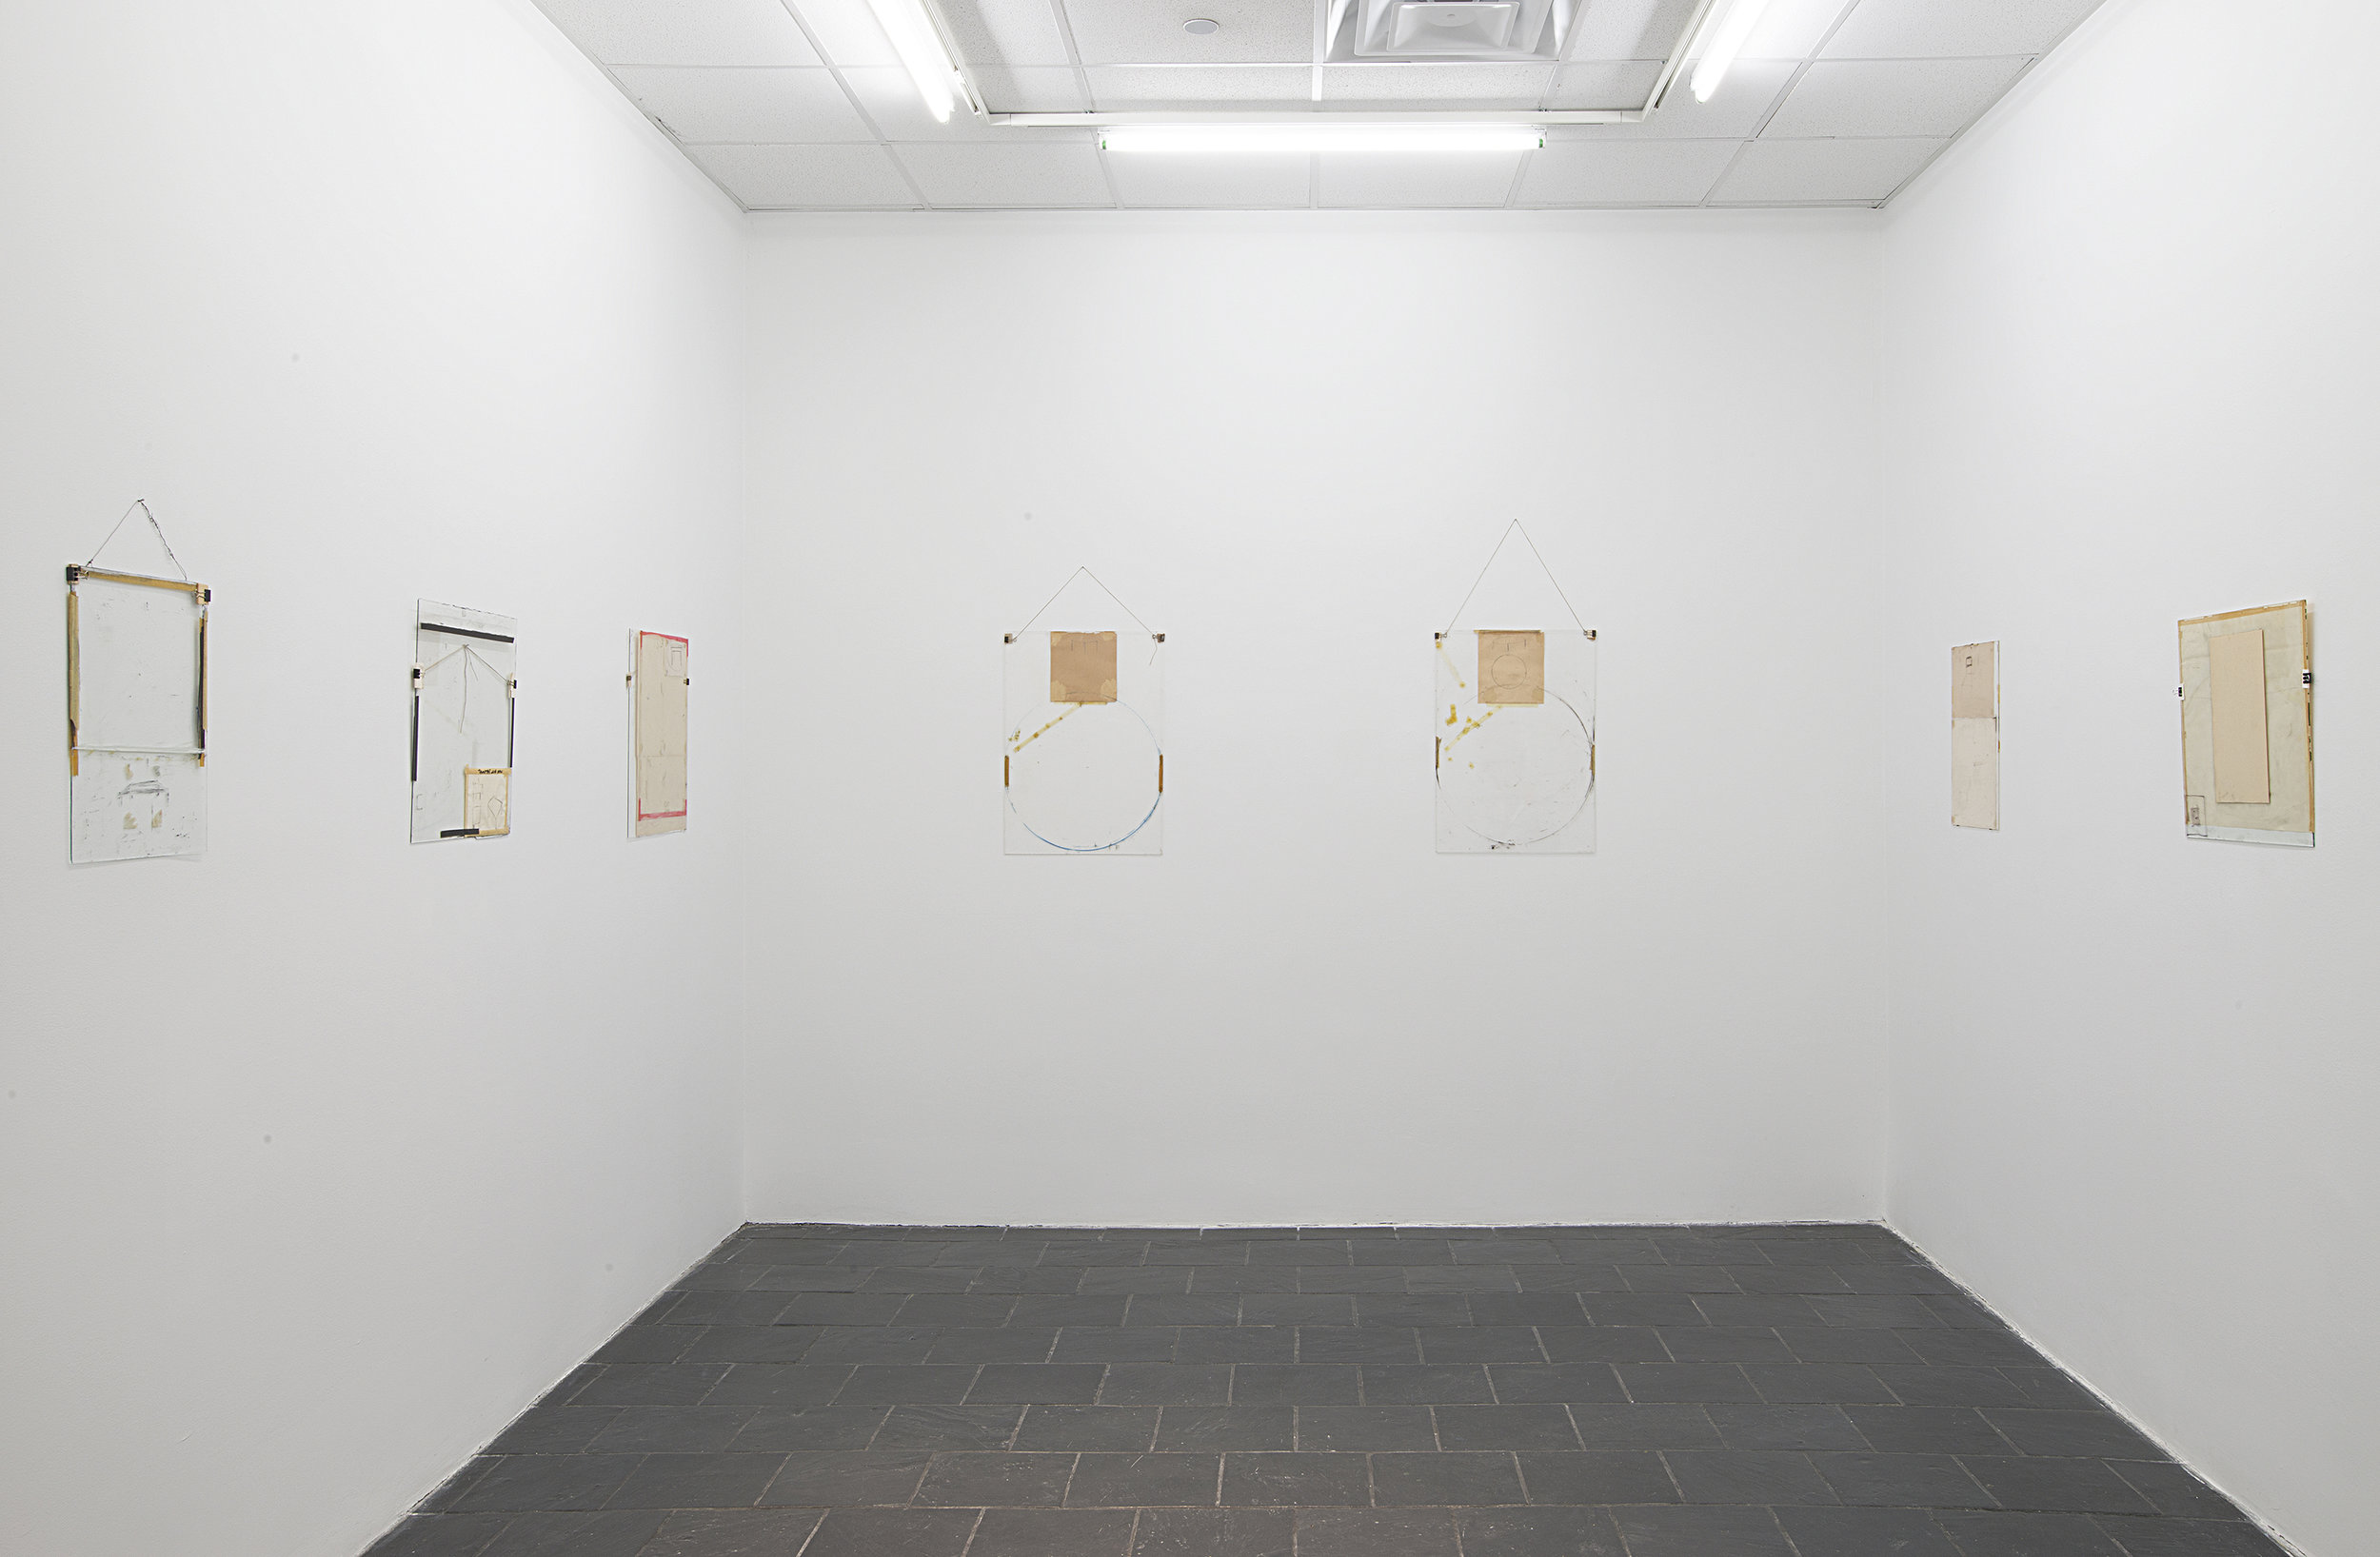 Installation view: Nahum Tevet: Works on Glass, 1972–1975 , Hunter College Art Galleries, 2016. Photo by Bill Orcutt.Left to right: Untitled #14, 1974; Untitled #29, 1975; Untitled #33, 1975; Untitled #30, 1975; Untitled #32, 1975; Untitled #36, 1975; Untitled #24, 1975.